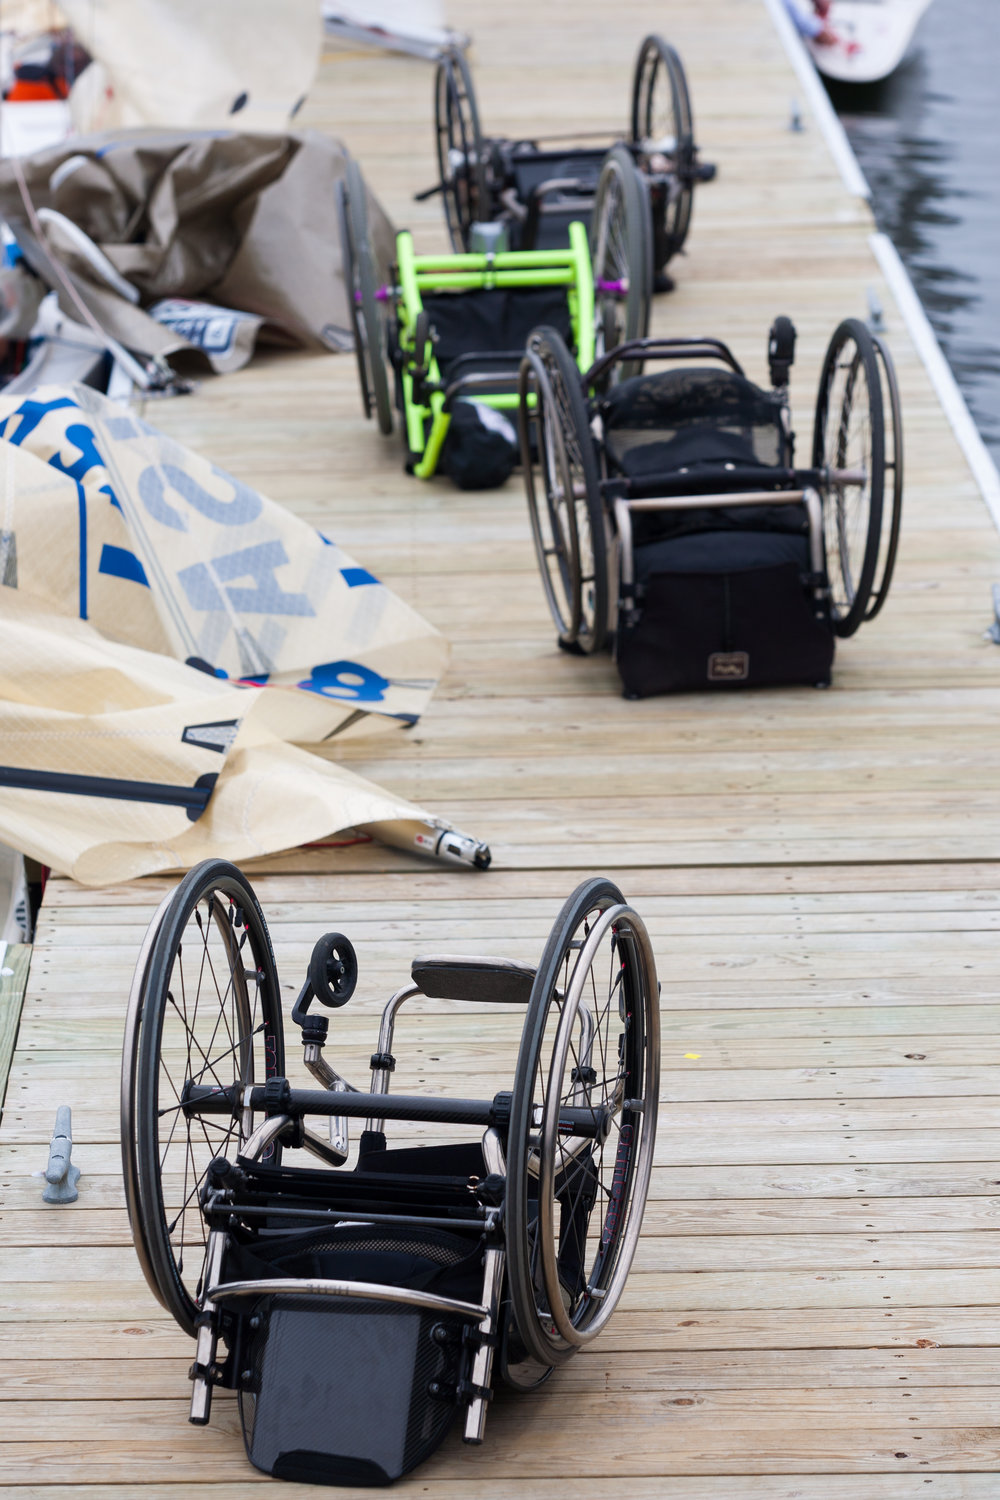 Gone sailing wheel chairs on dock credit Thornton Cohen.jpg